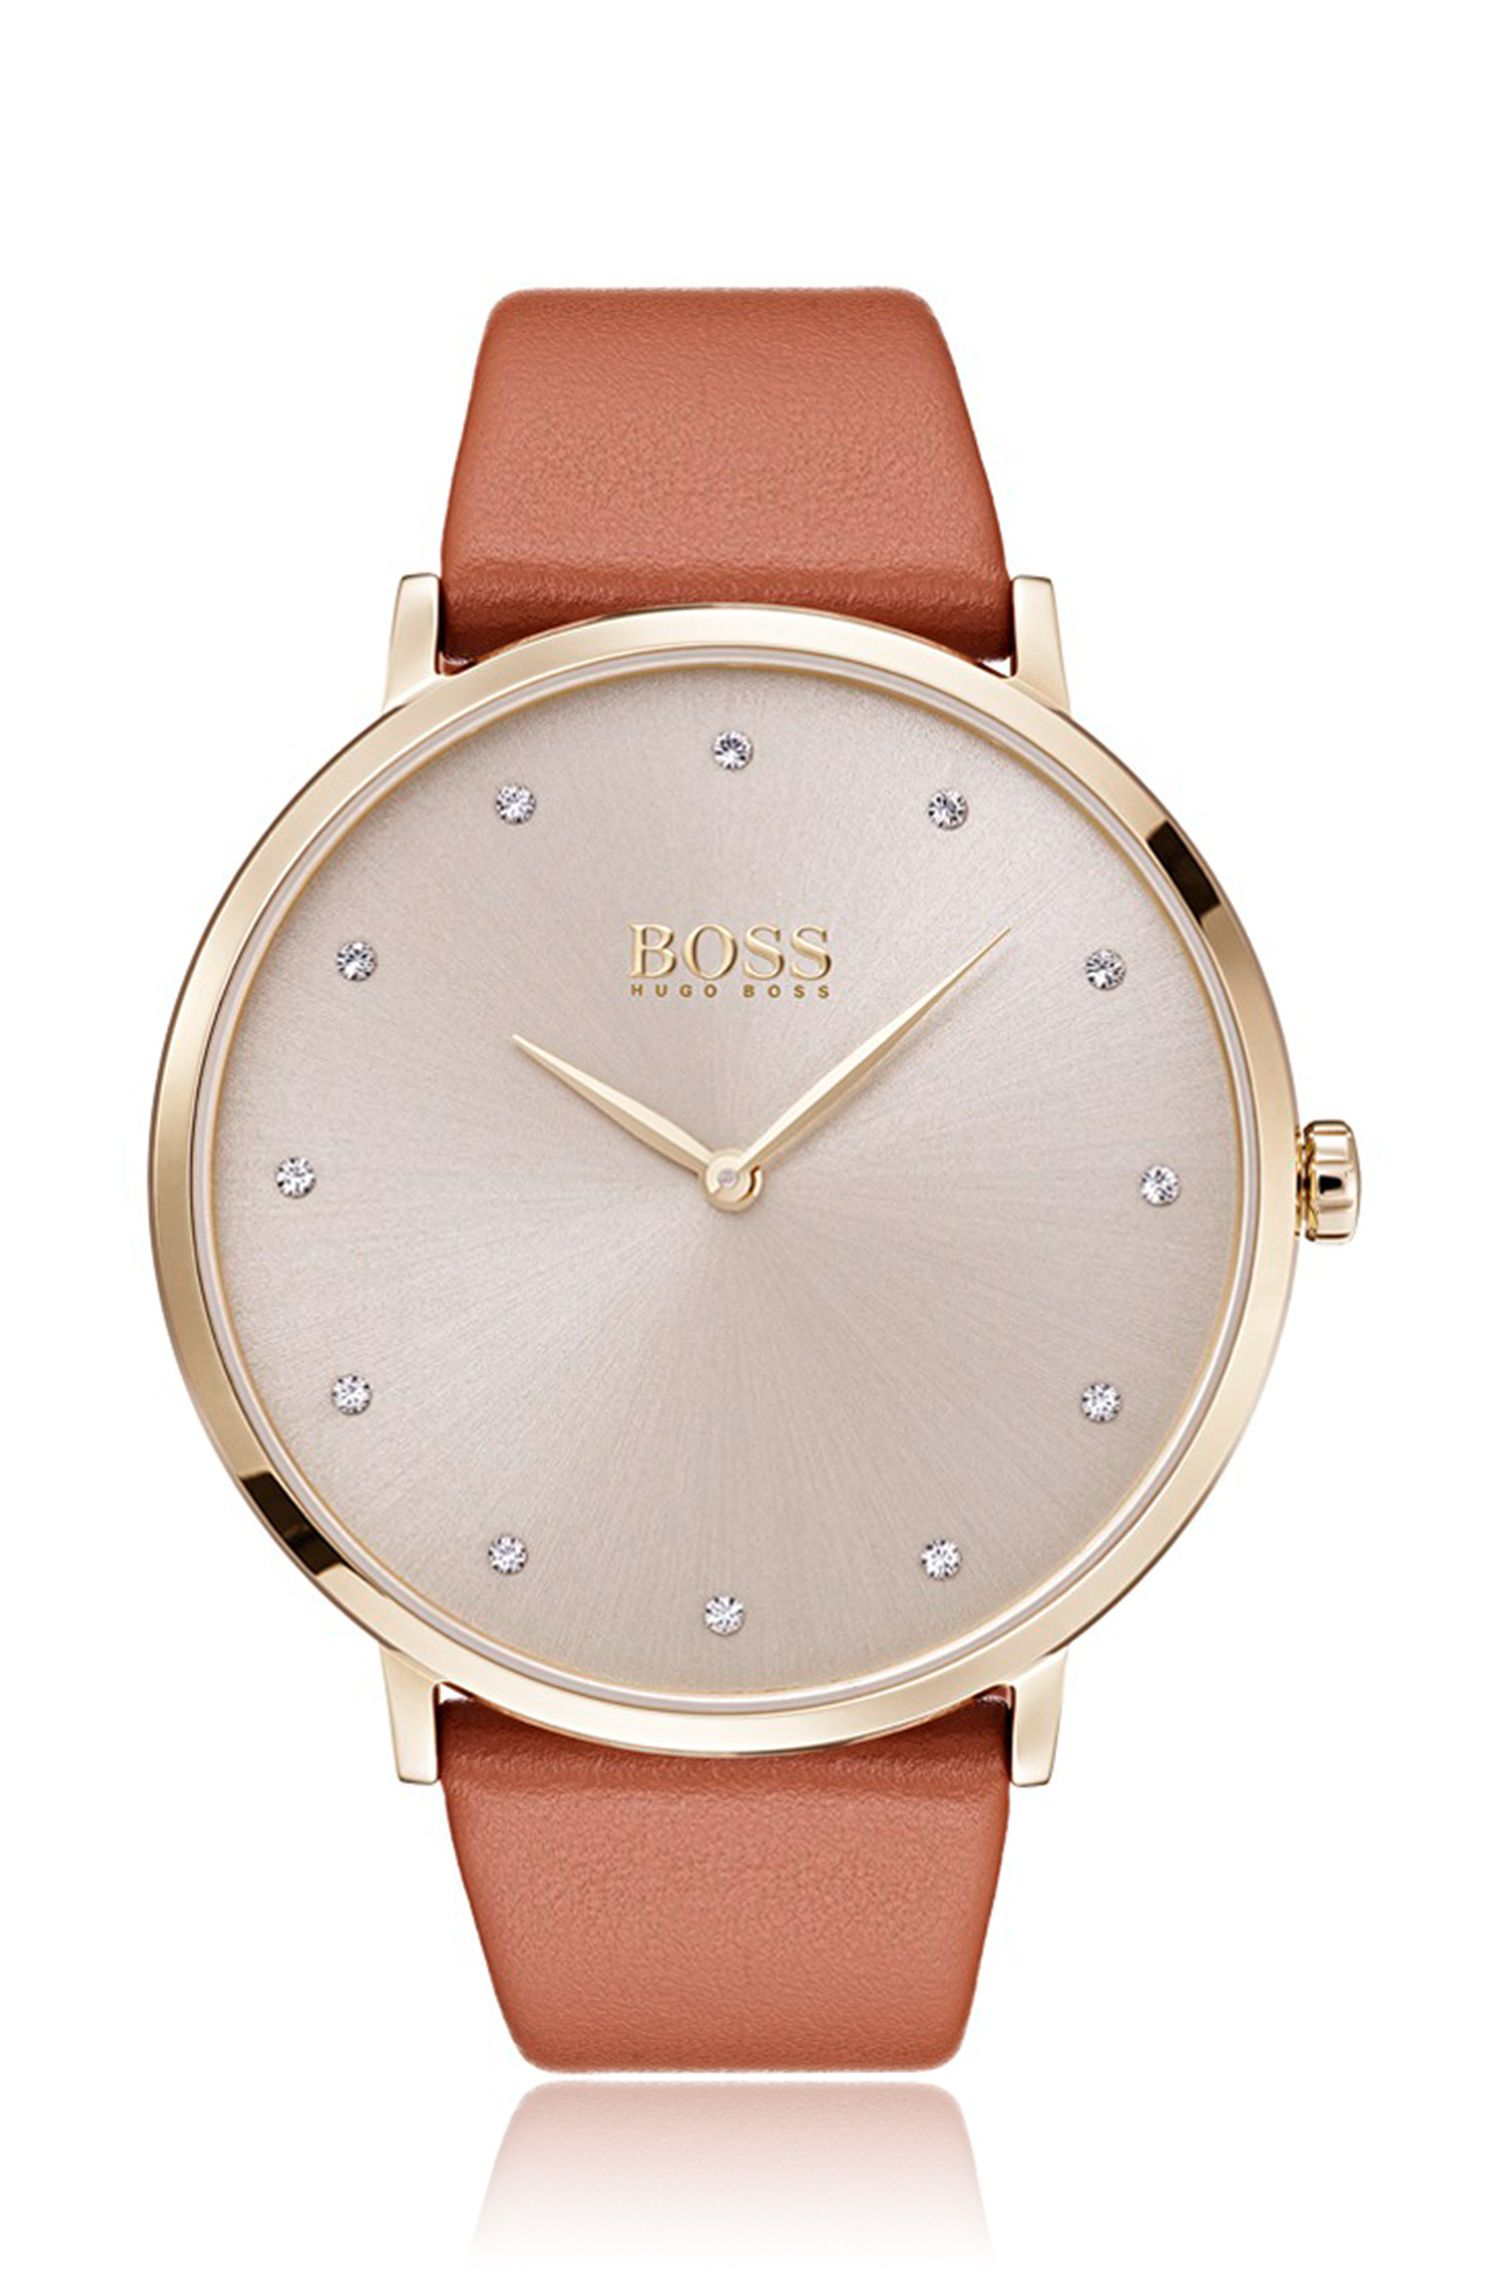 Slimline watch with sunray dial and brown leather strap